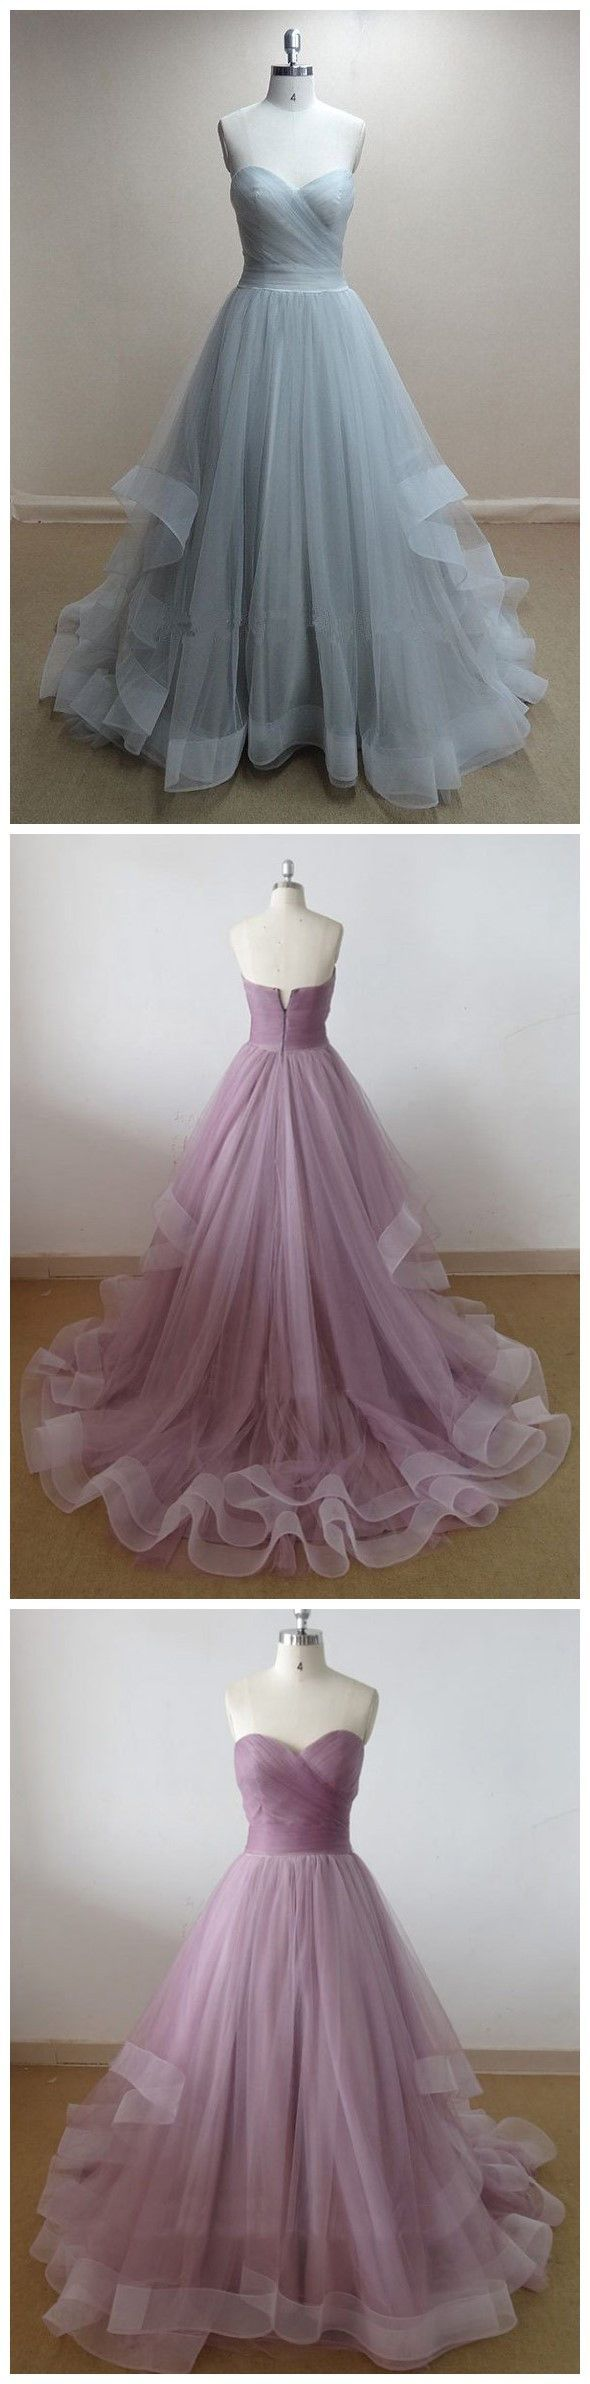 Simple Elegant A-line Sweetheart Ruched Tulle Long Prom Dress/Party Dress TUPD-30994  zivalash